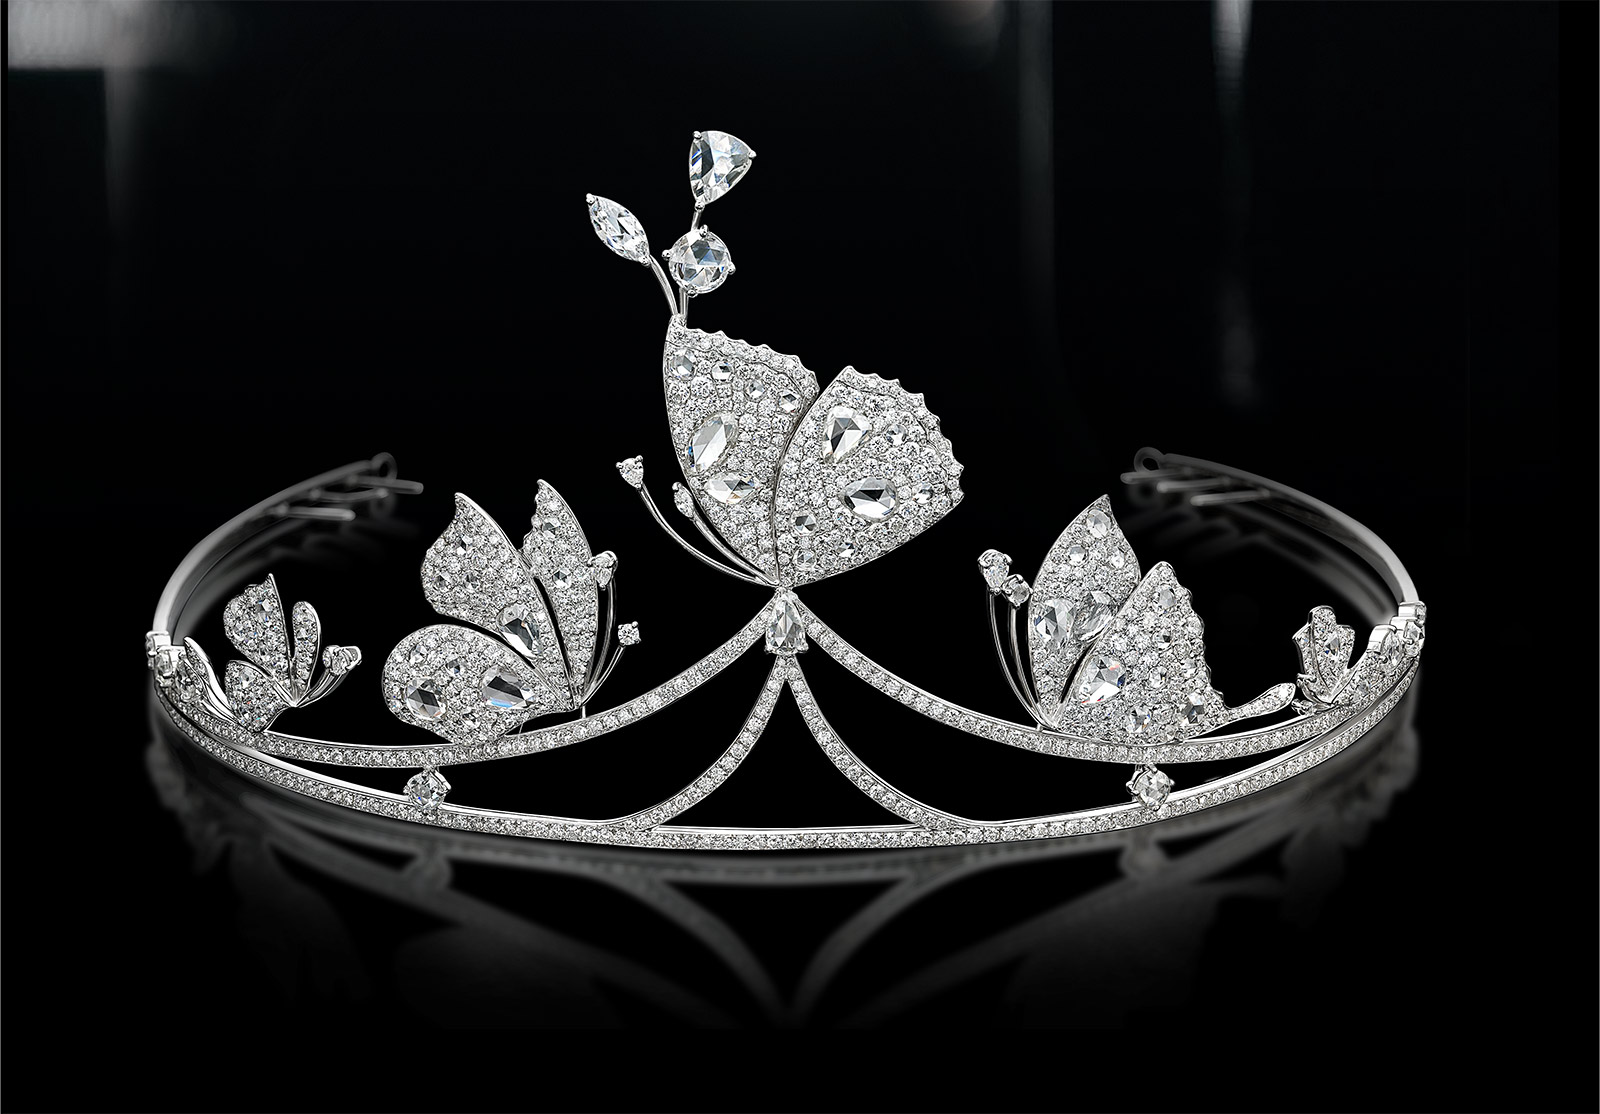 Jessica Fong 'I do' tiara with diamonds in 18k white gold